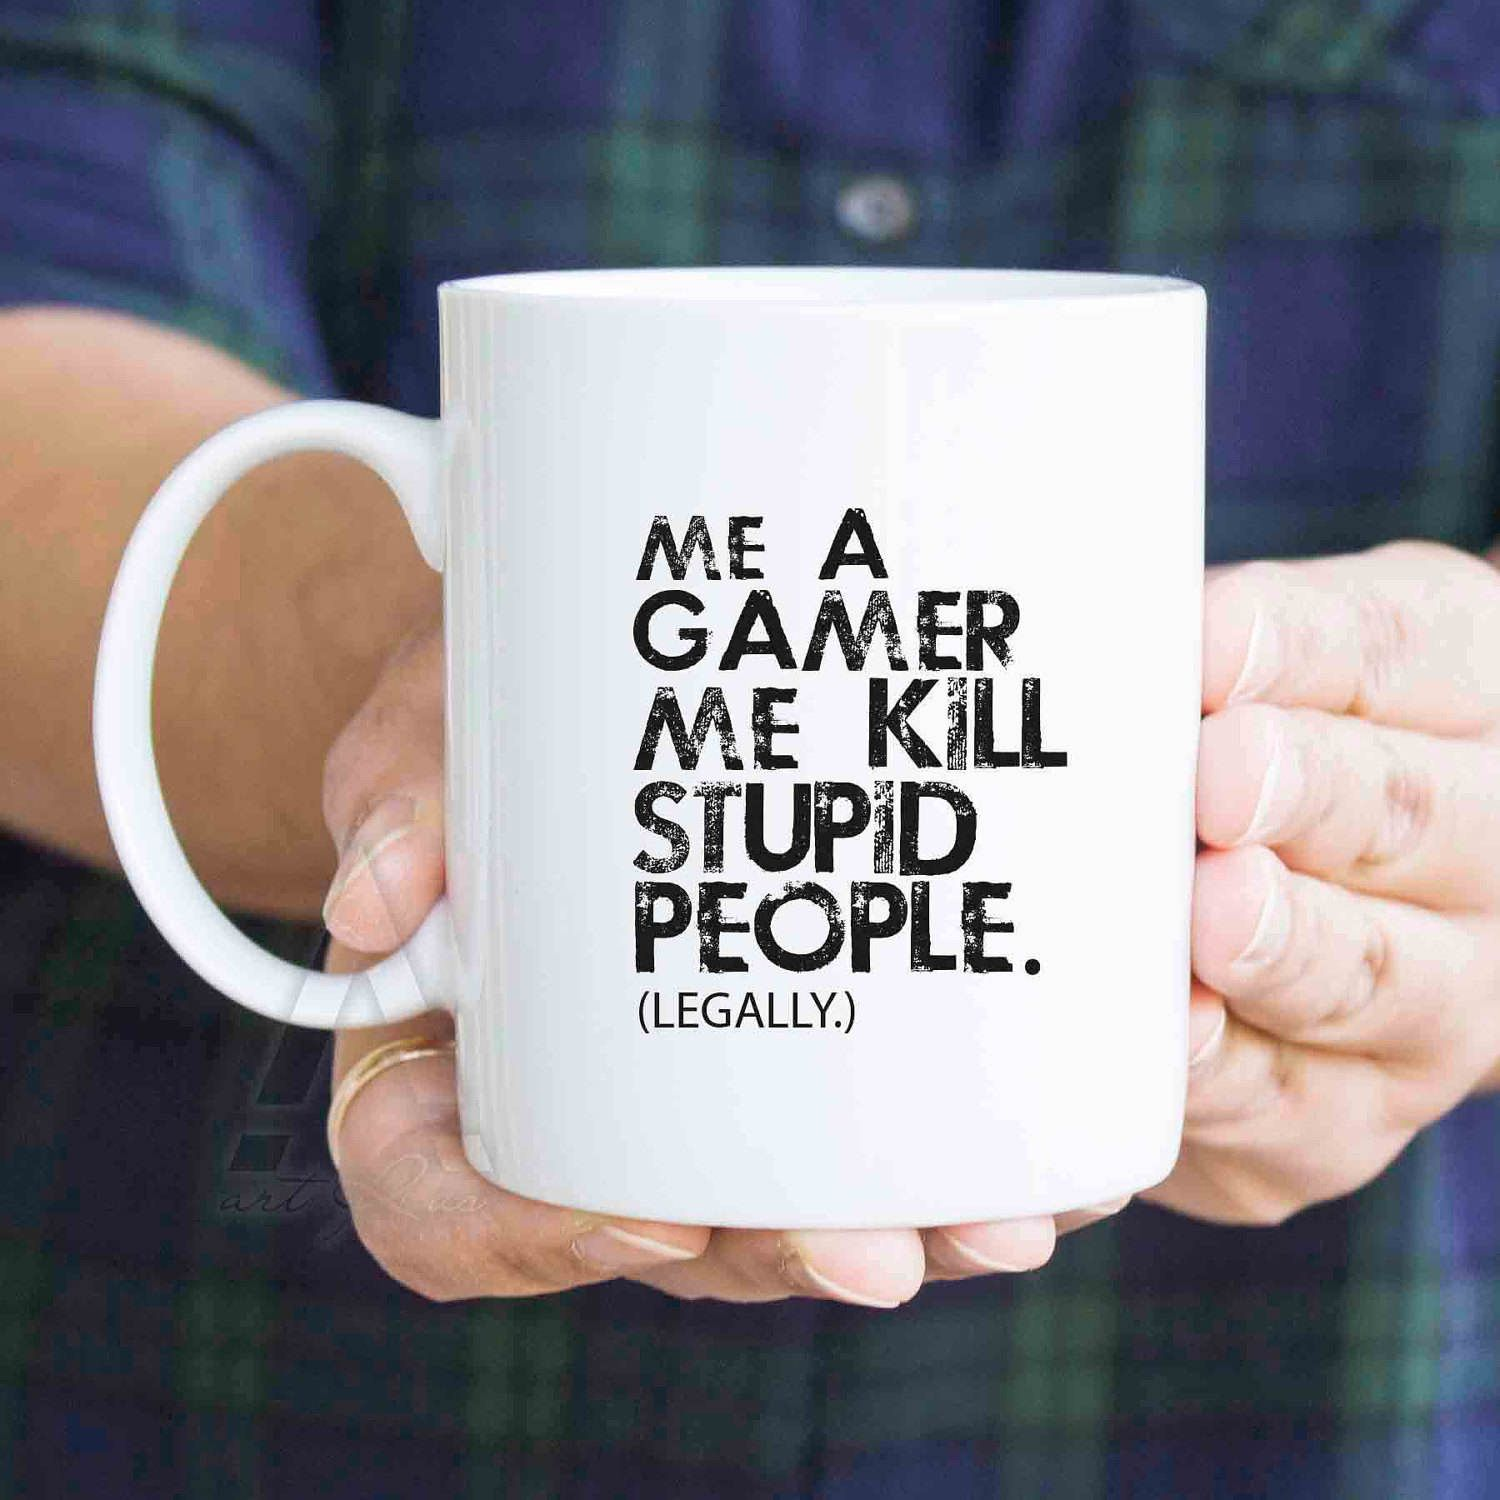 Gifts For Gamers Christmas Me A Gamer Kill Stupid People Legally Funny Coffee Mugs Him Birthday Wedding By ArtRuss On Etsy